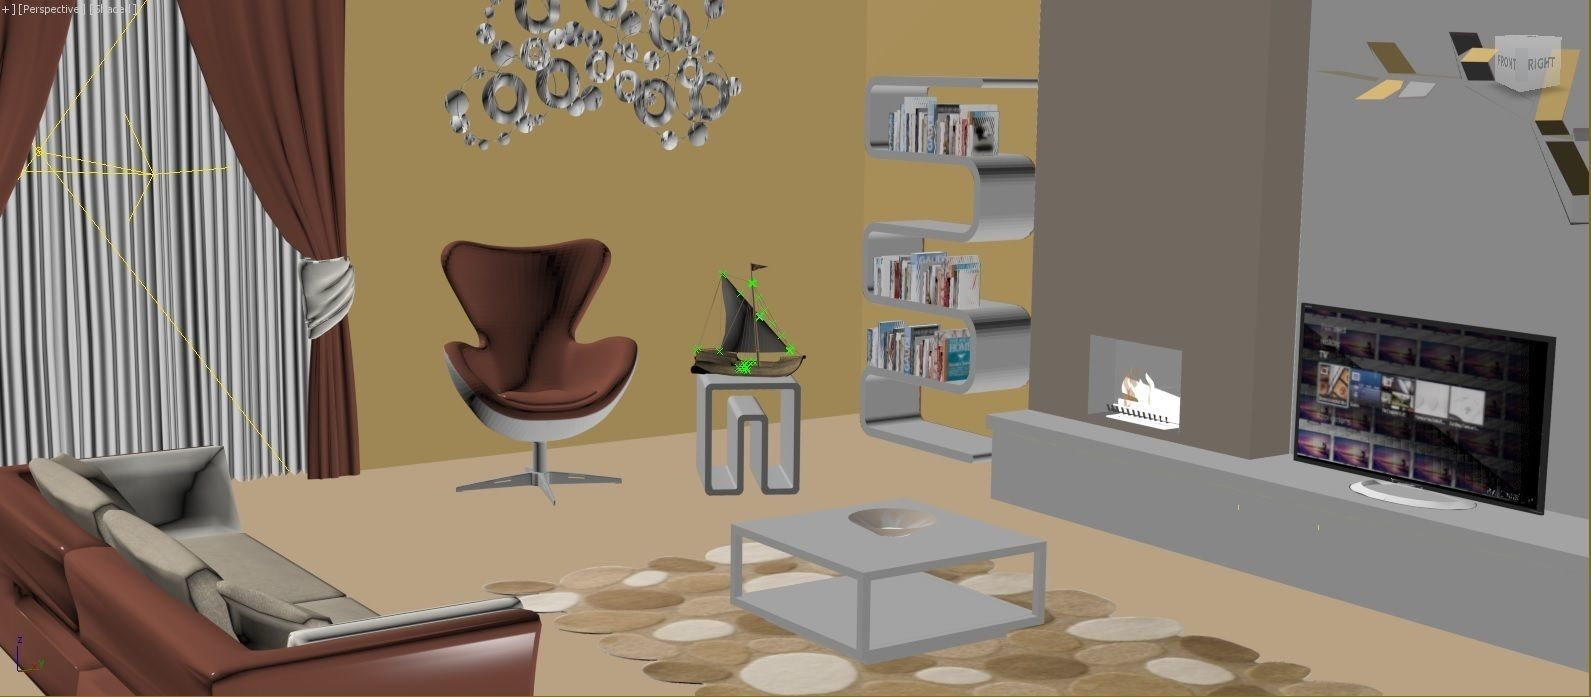 Interior design living room 3d model buy interior design for 3d model room design